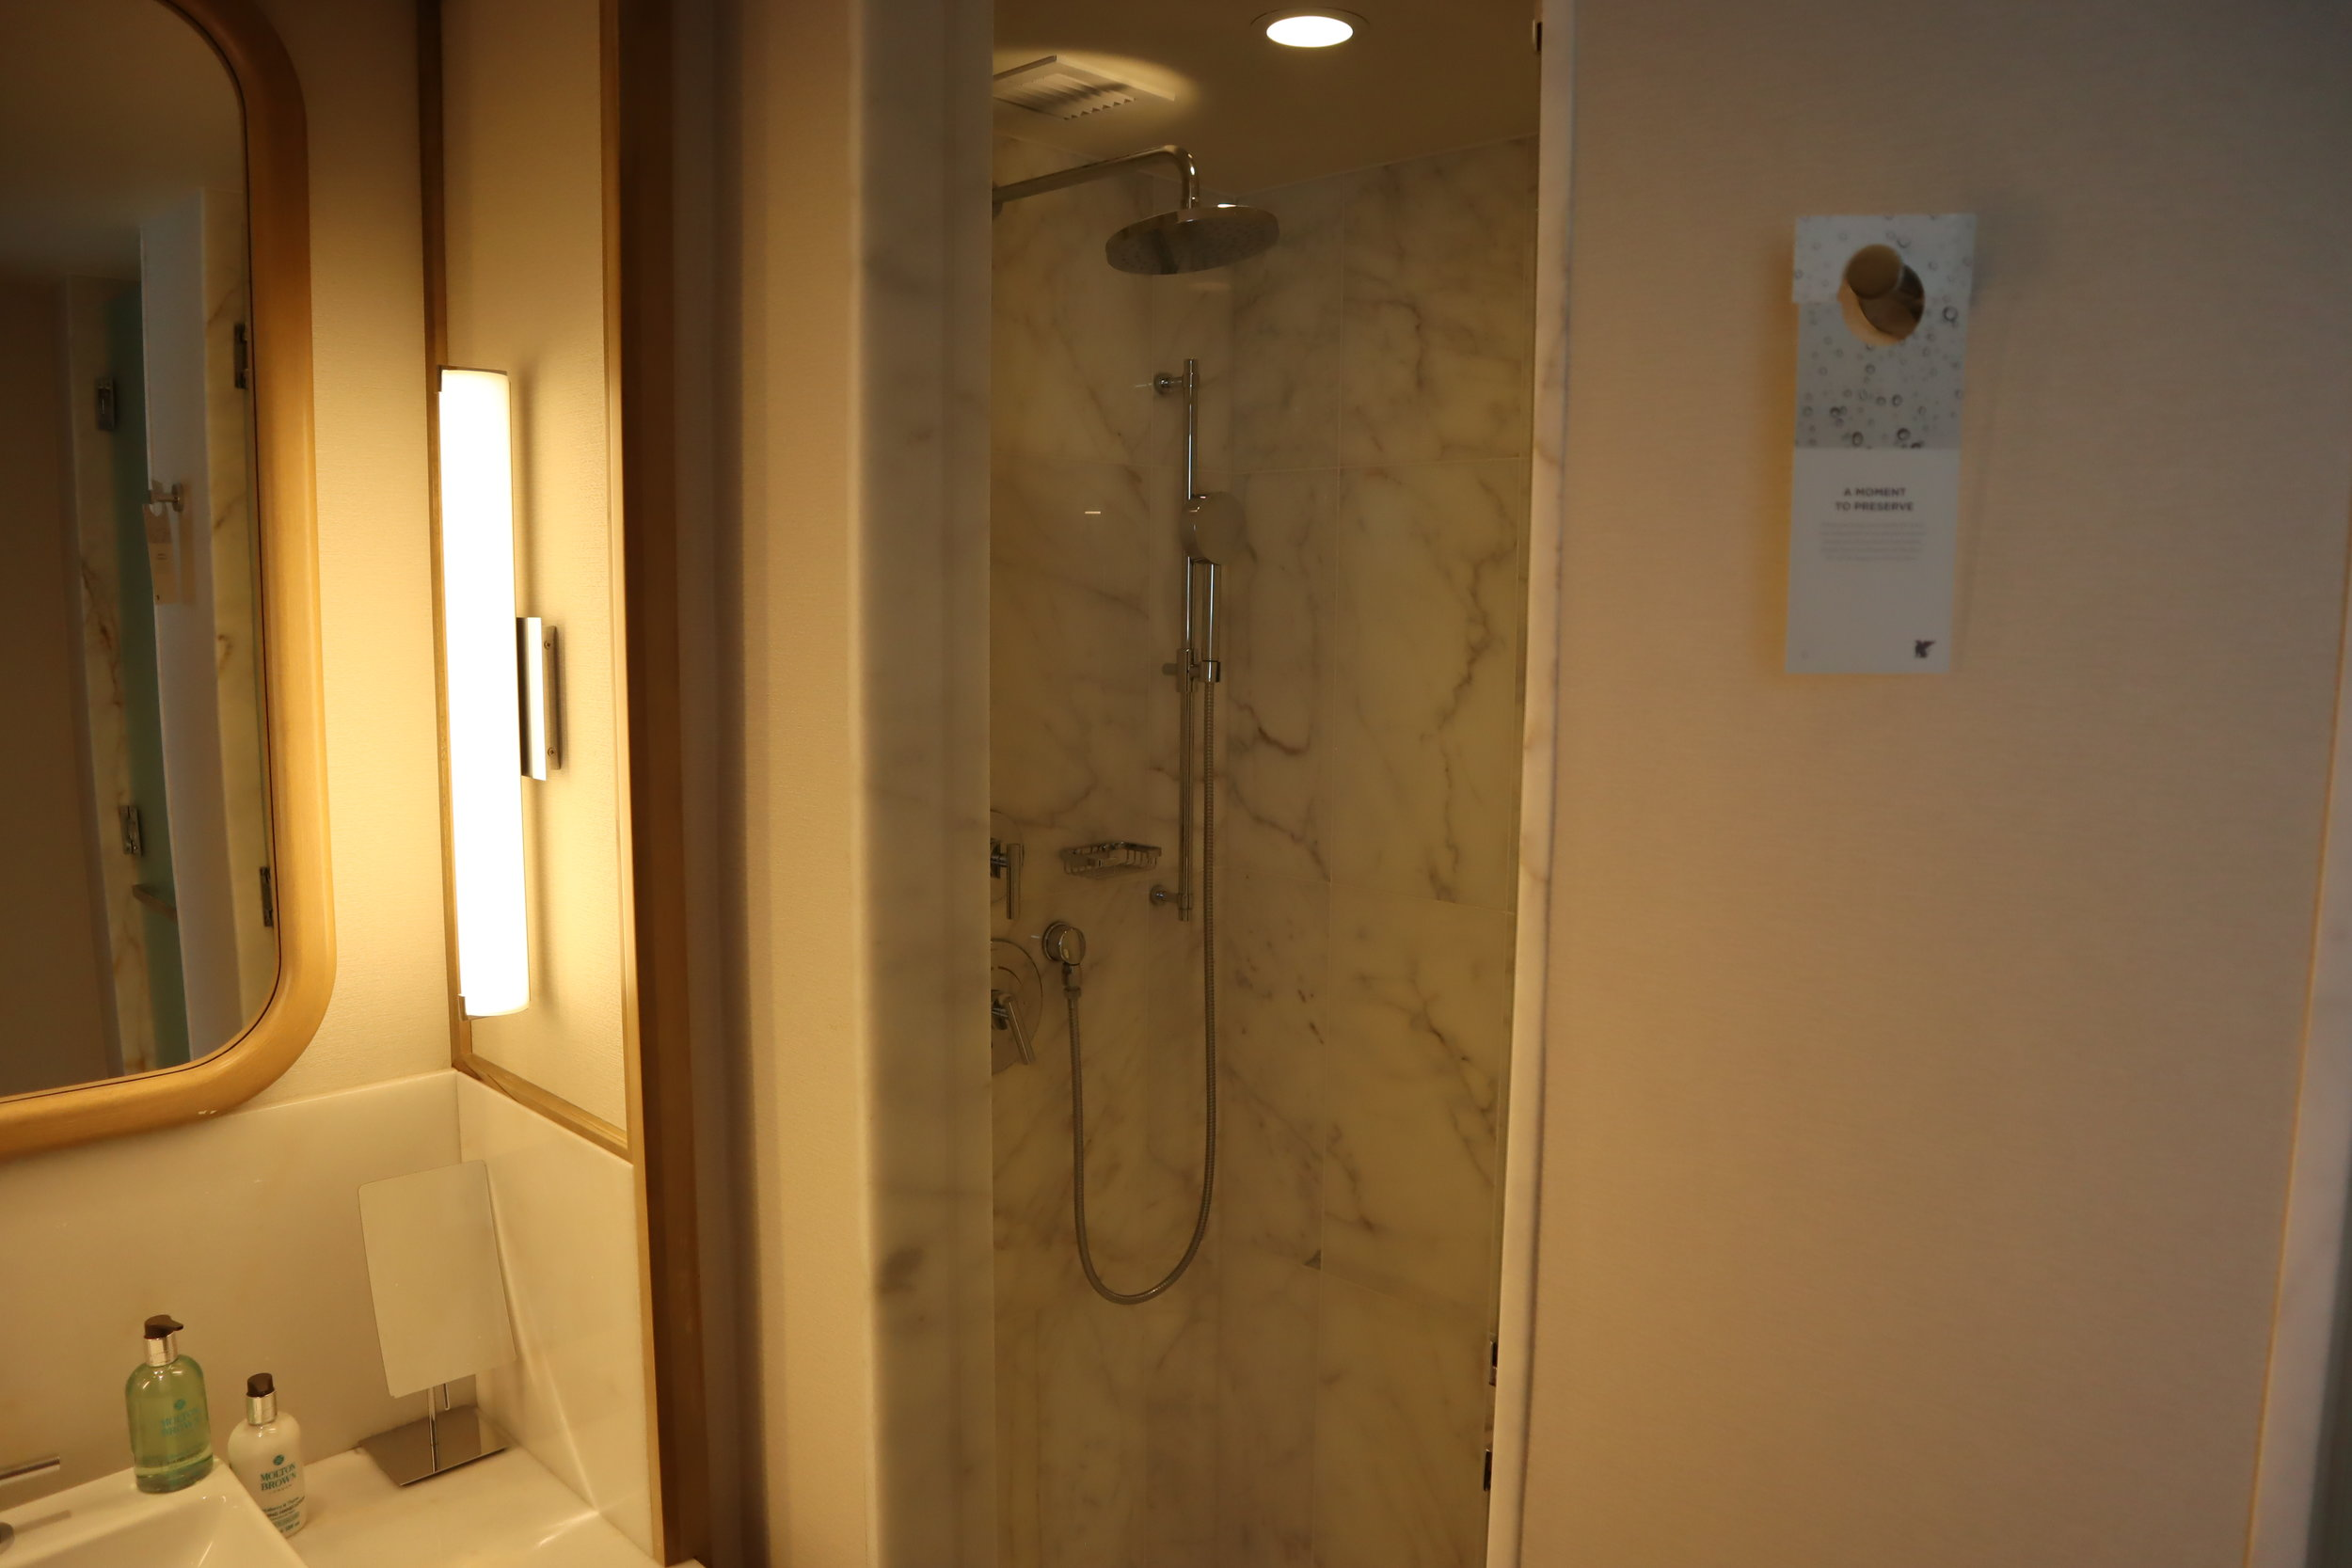 JW Marriott Parq Vancouver – Shower